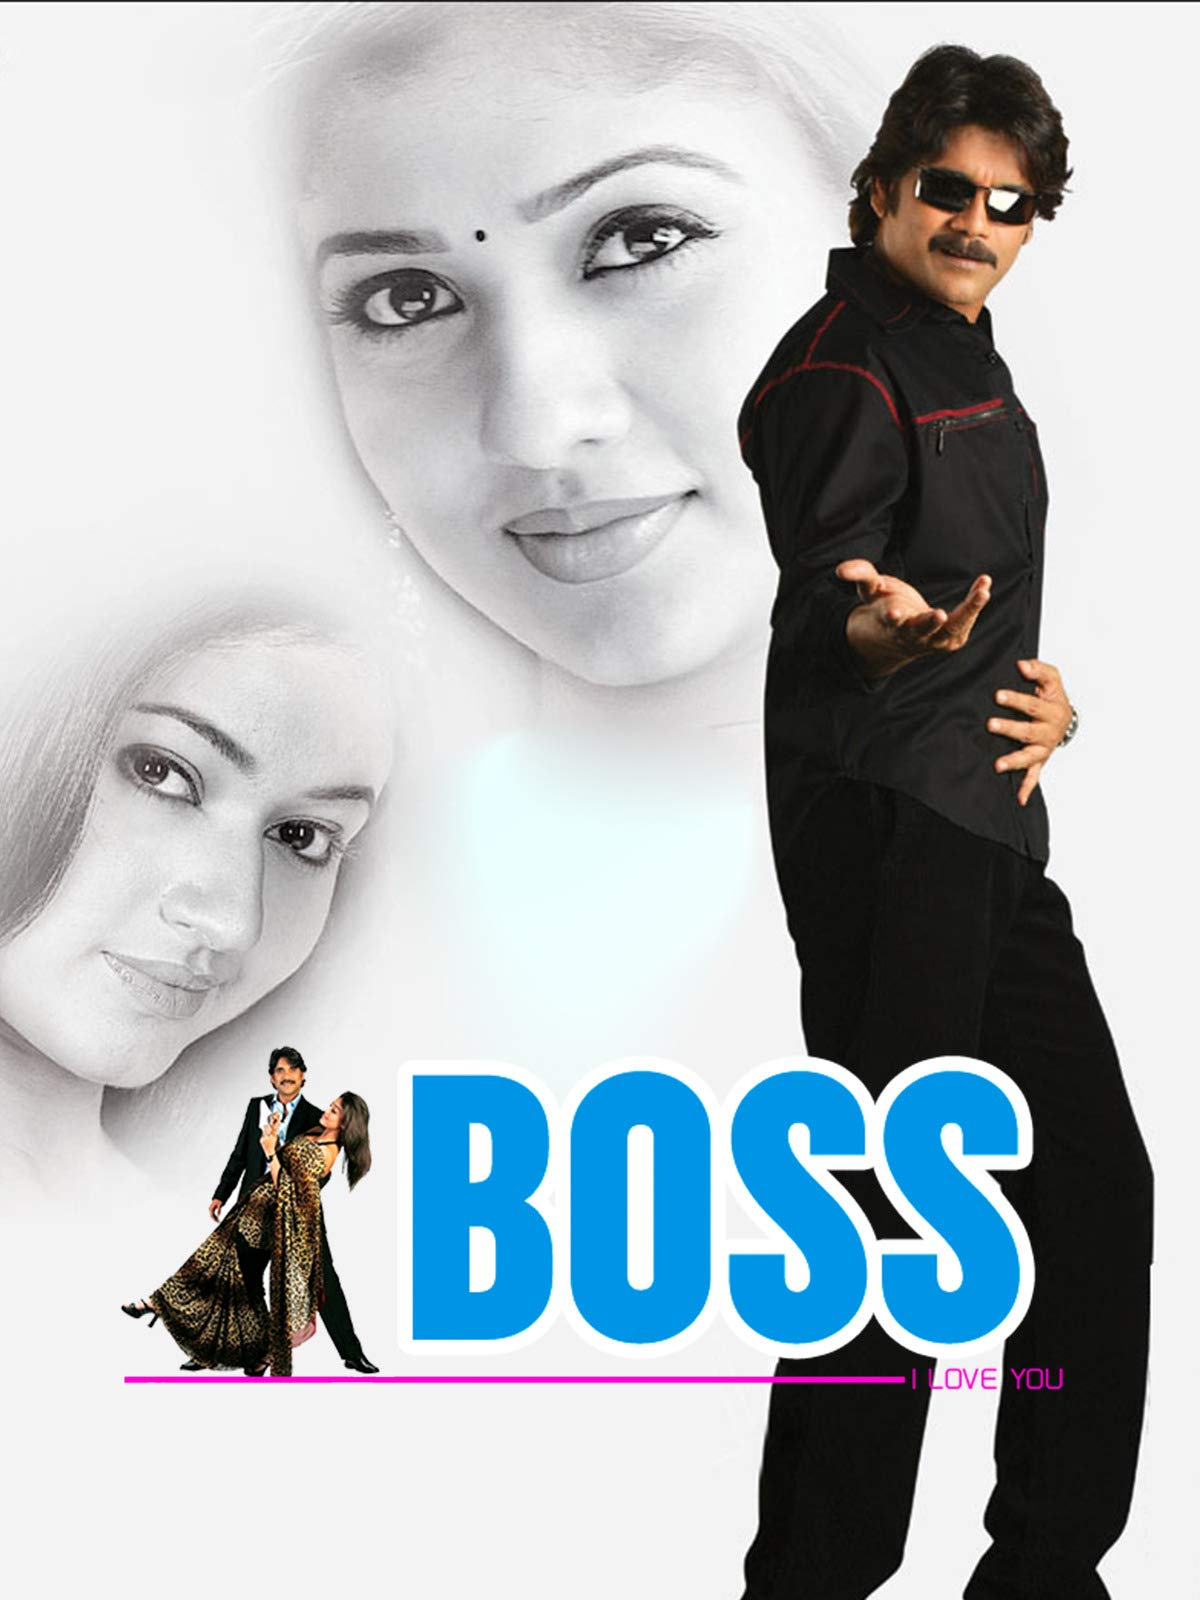 Boss - I love you on Amazon Prime Video UK